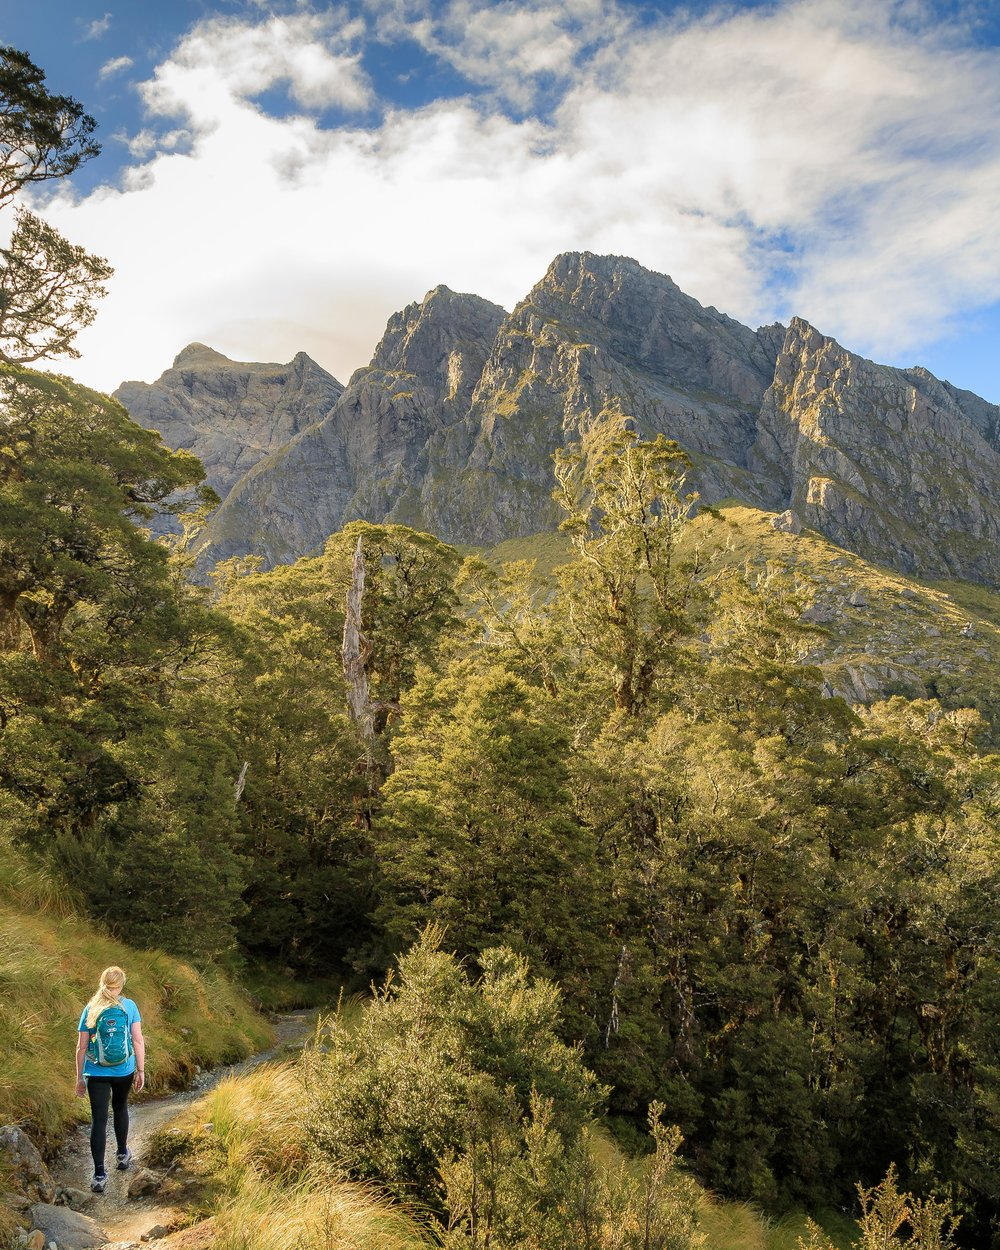 2 week New Zealand South Island Itinerary: The Routeburn